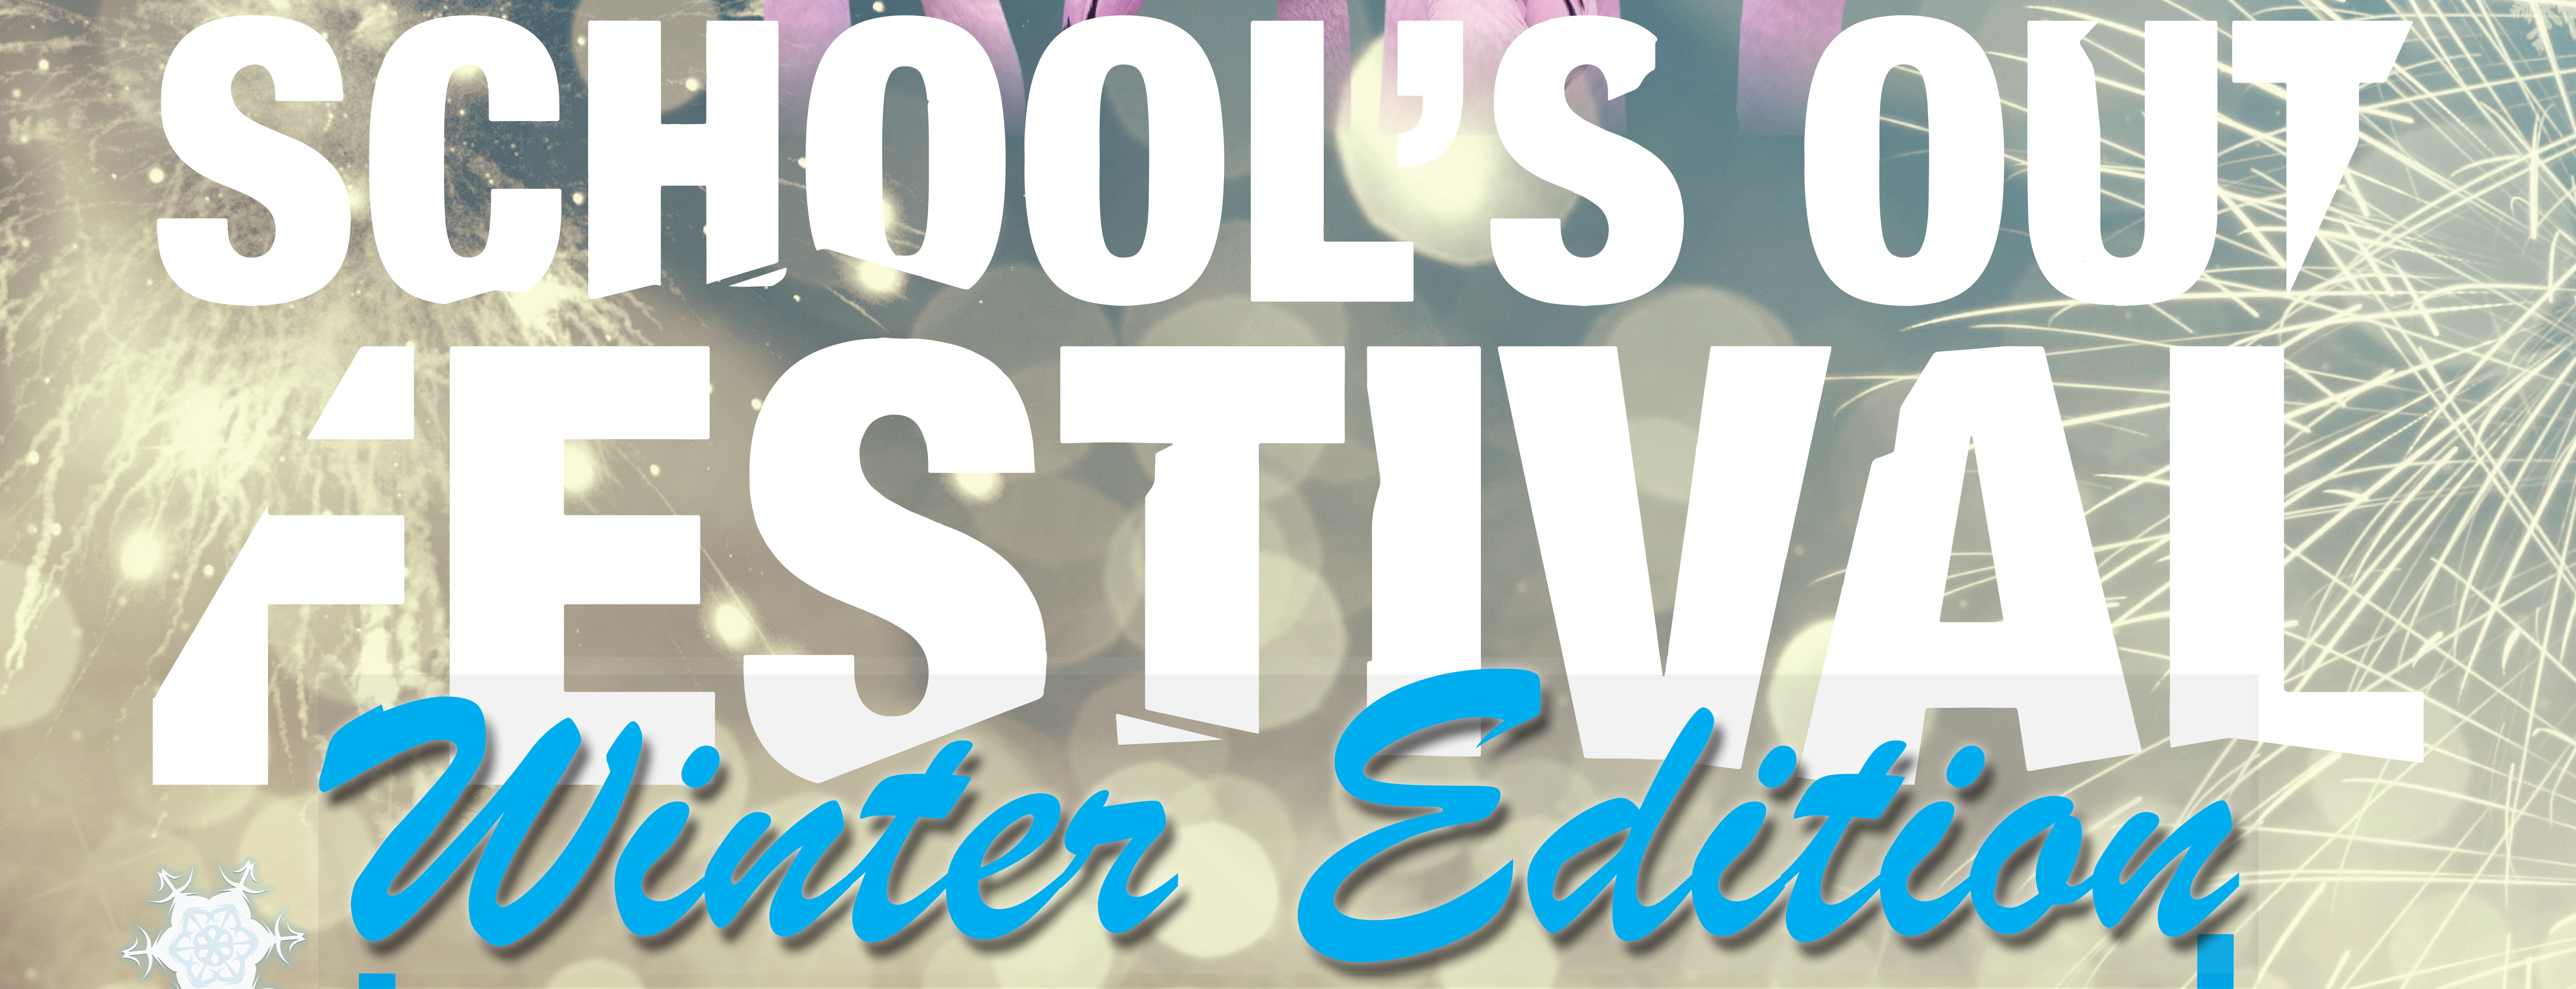 School's Out: Winter Edition den 7 december!